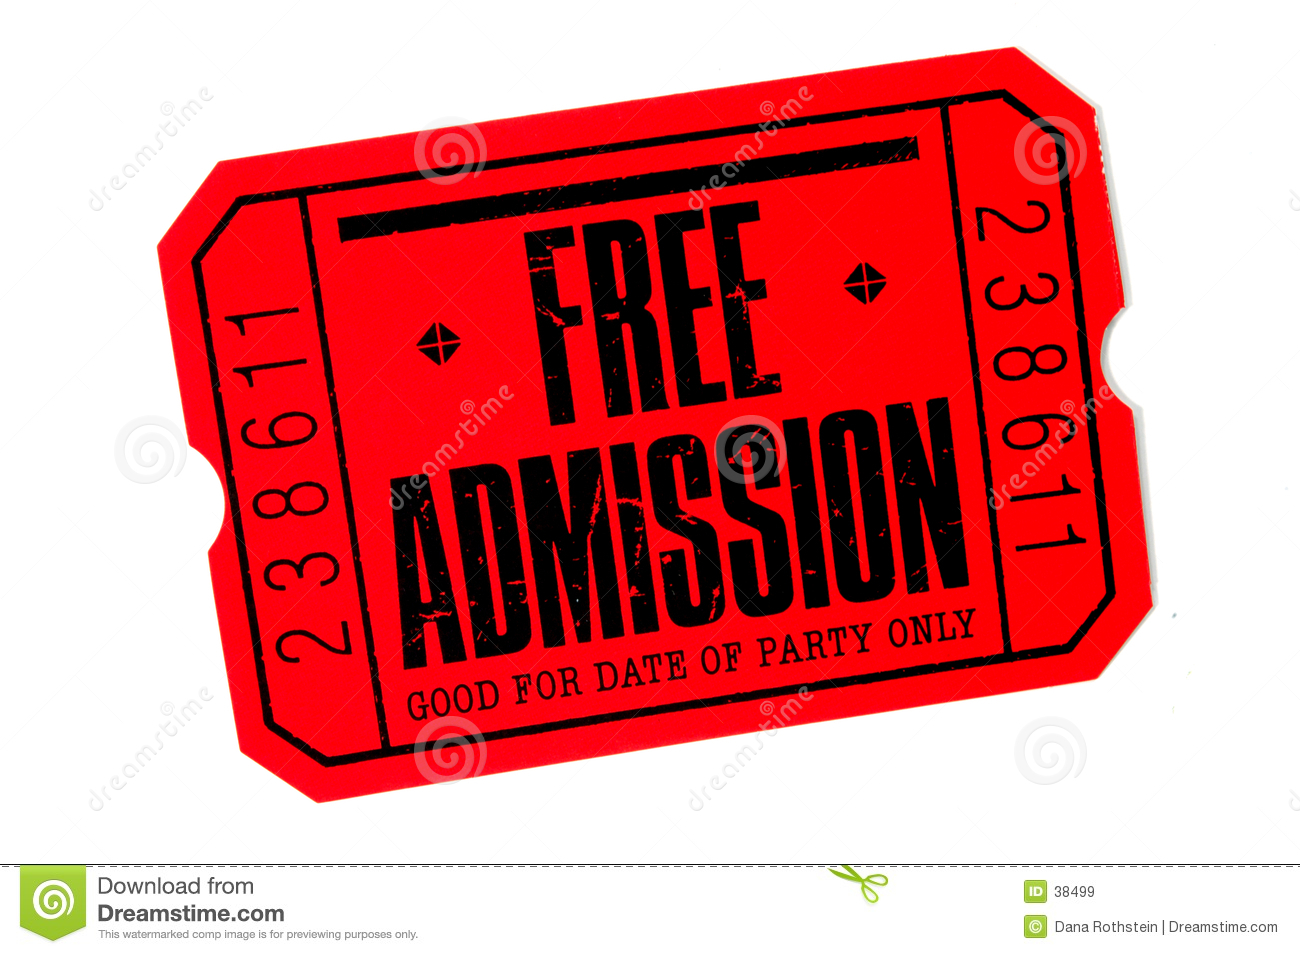 Entrance ticket clipart vector free Admit One Ticket Clipart | Free download best Admit One Ticket ... vector free